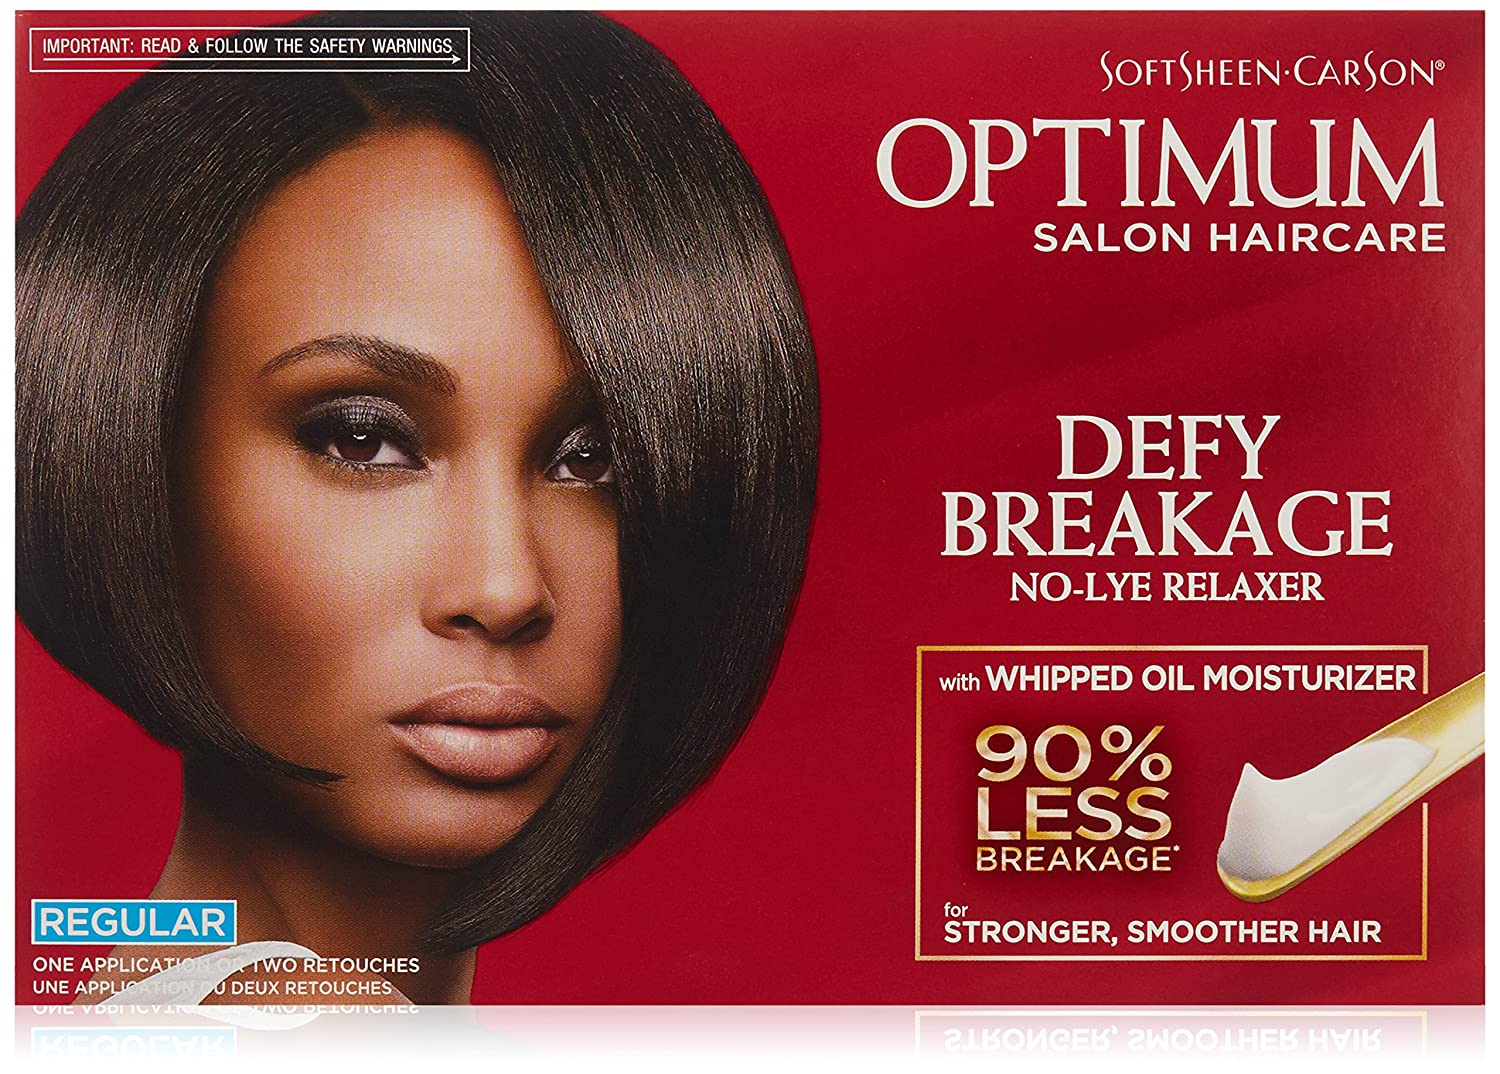 Optimum Care by SoftSheen Carson Care Defy Breakage